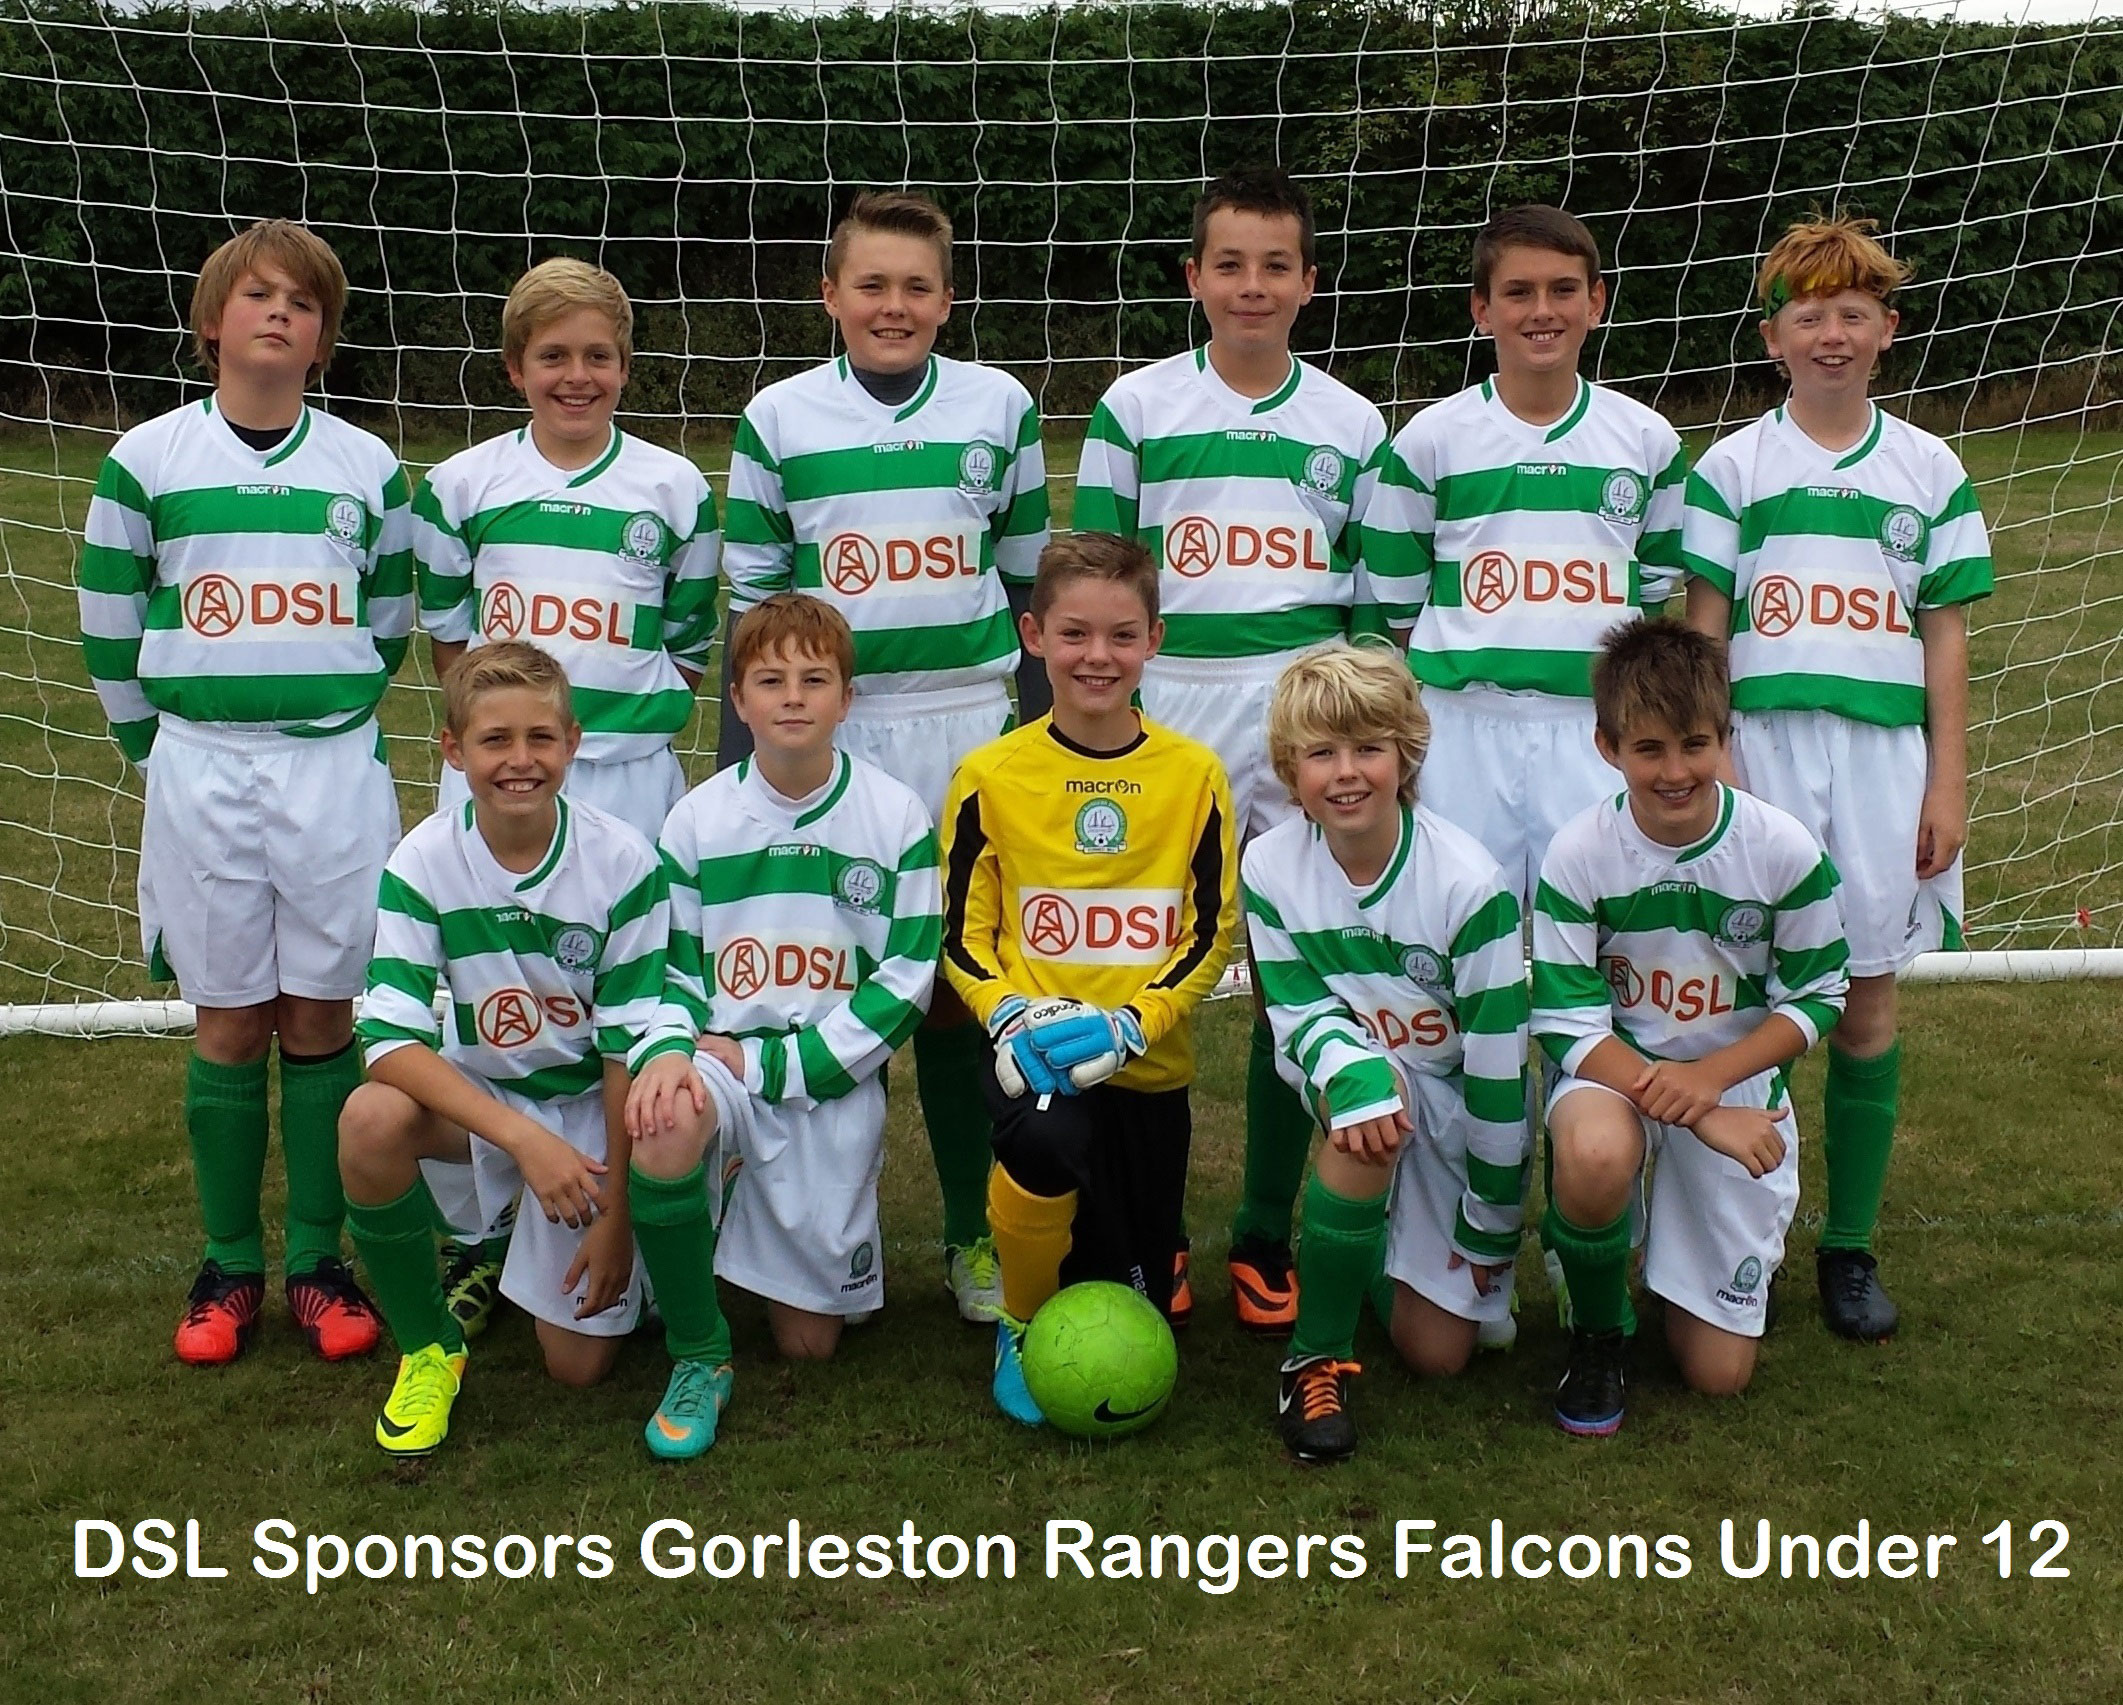 Gorleston Rangersnder 12 Falcons